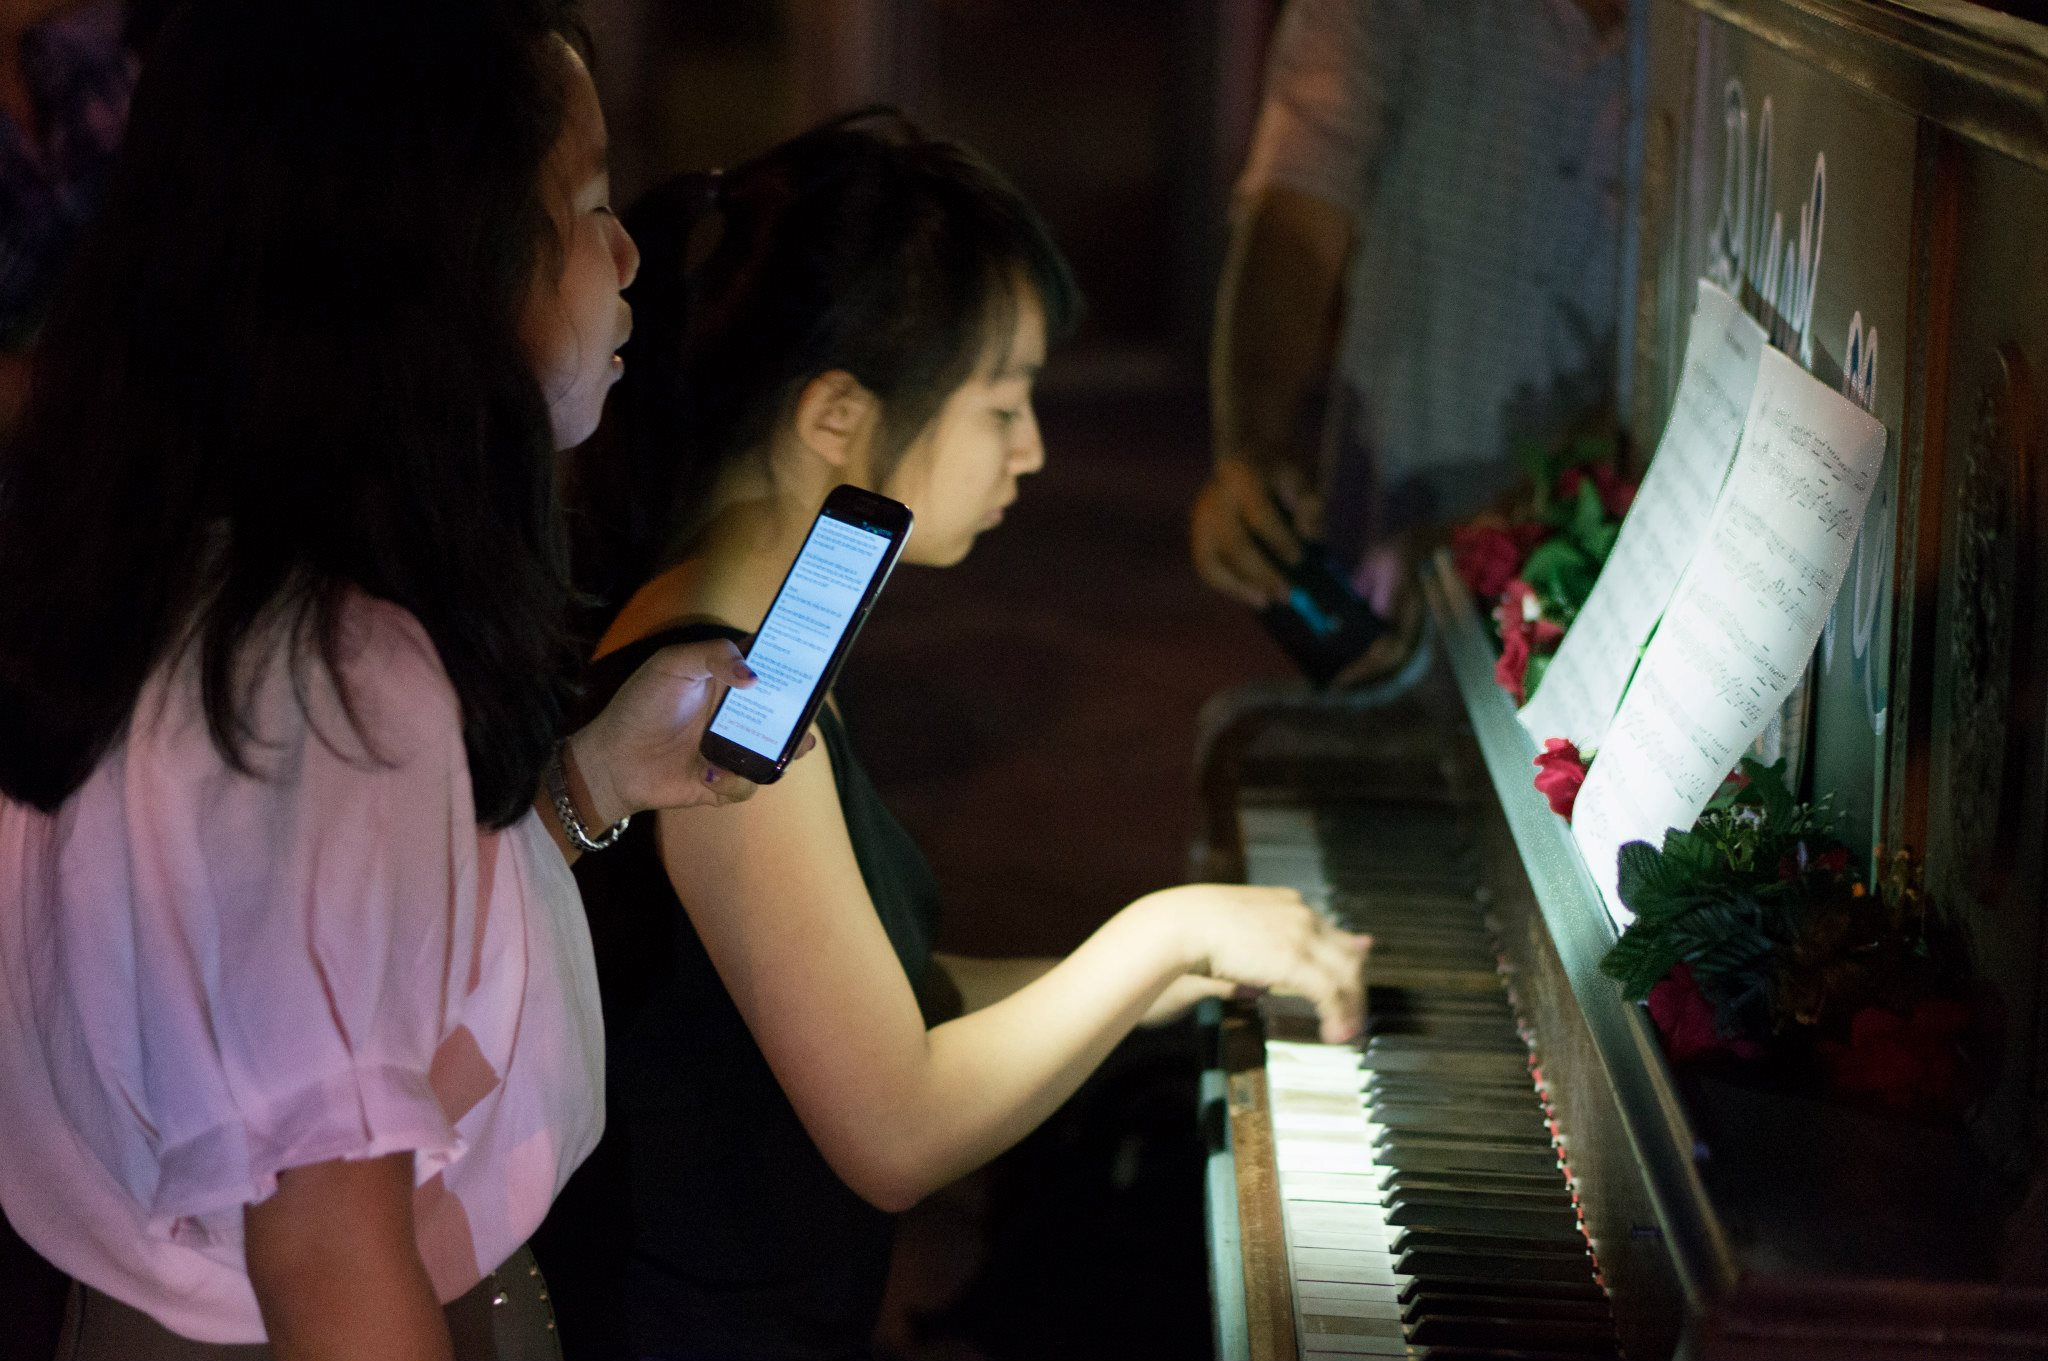 Day or night, people gather around the piano and play.